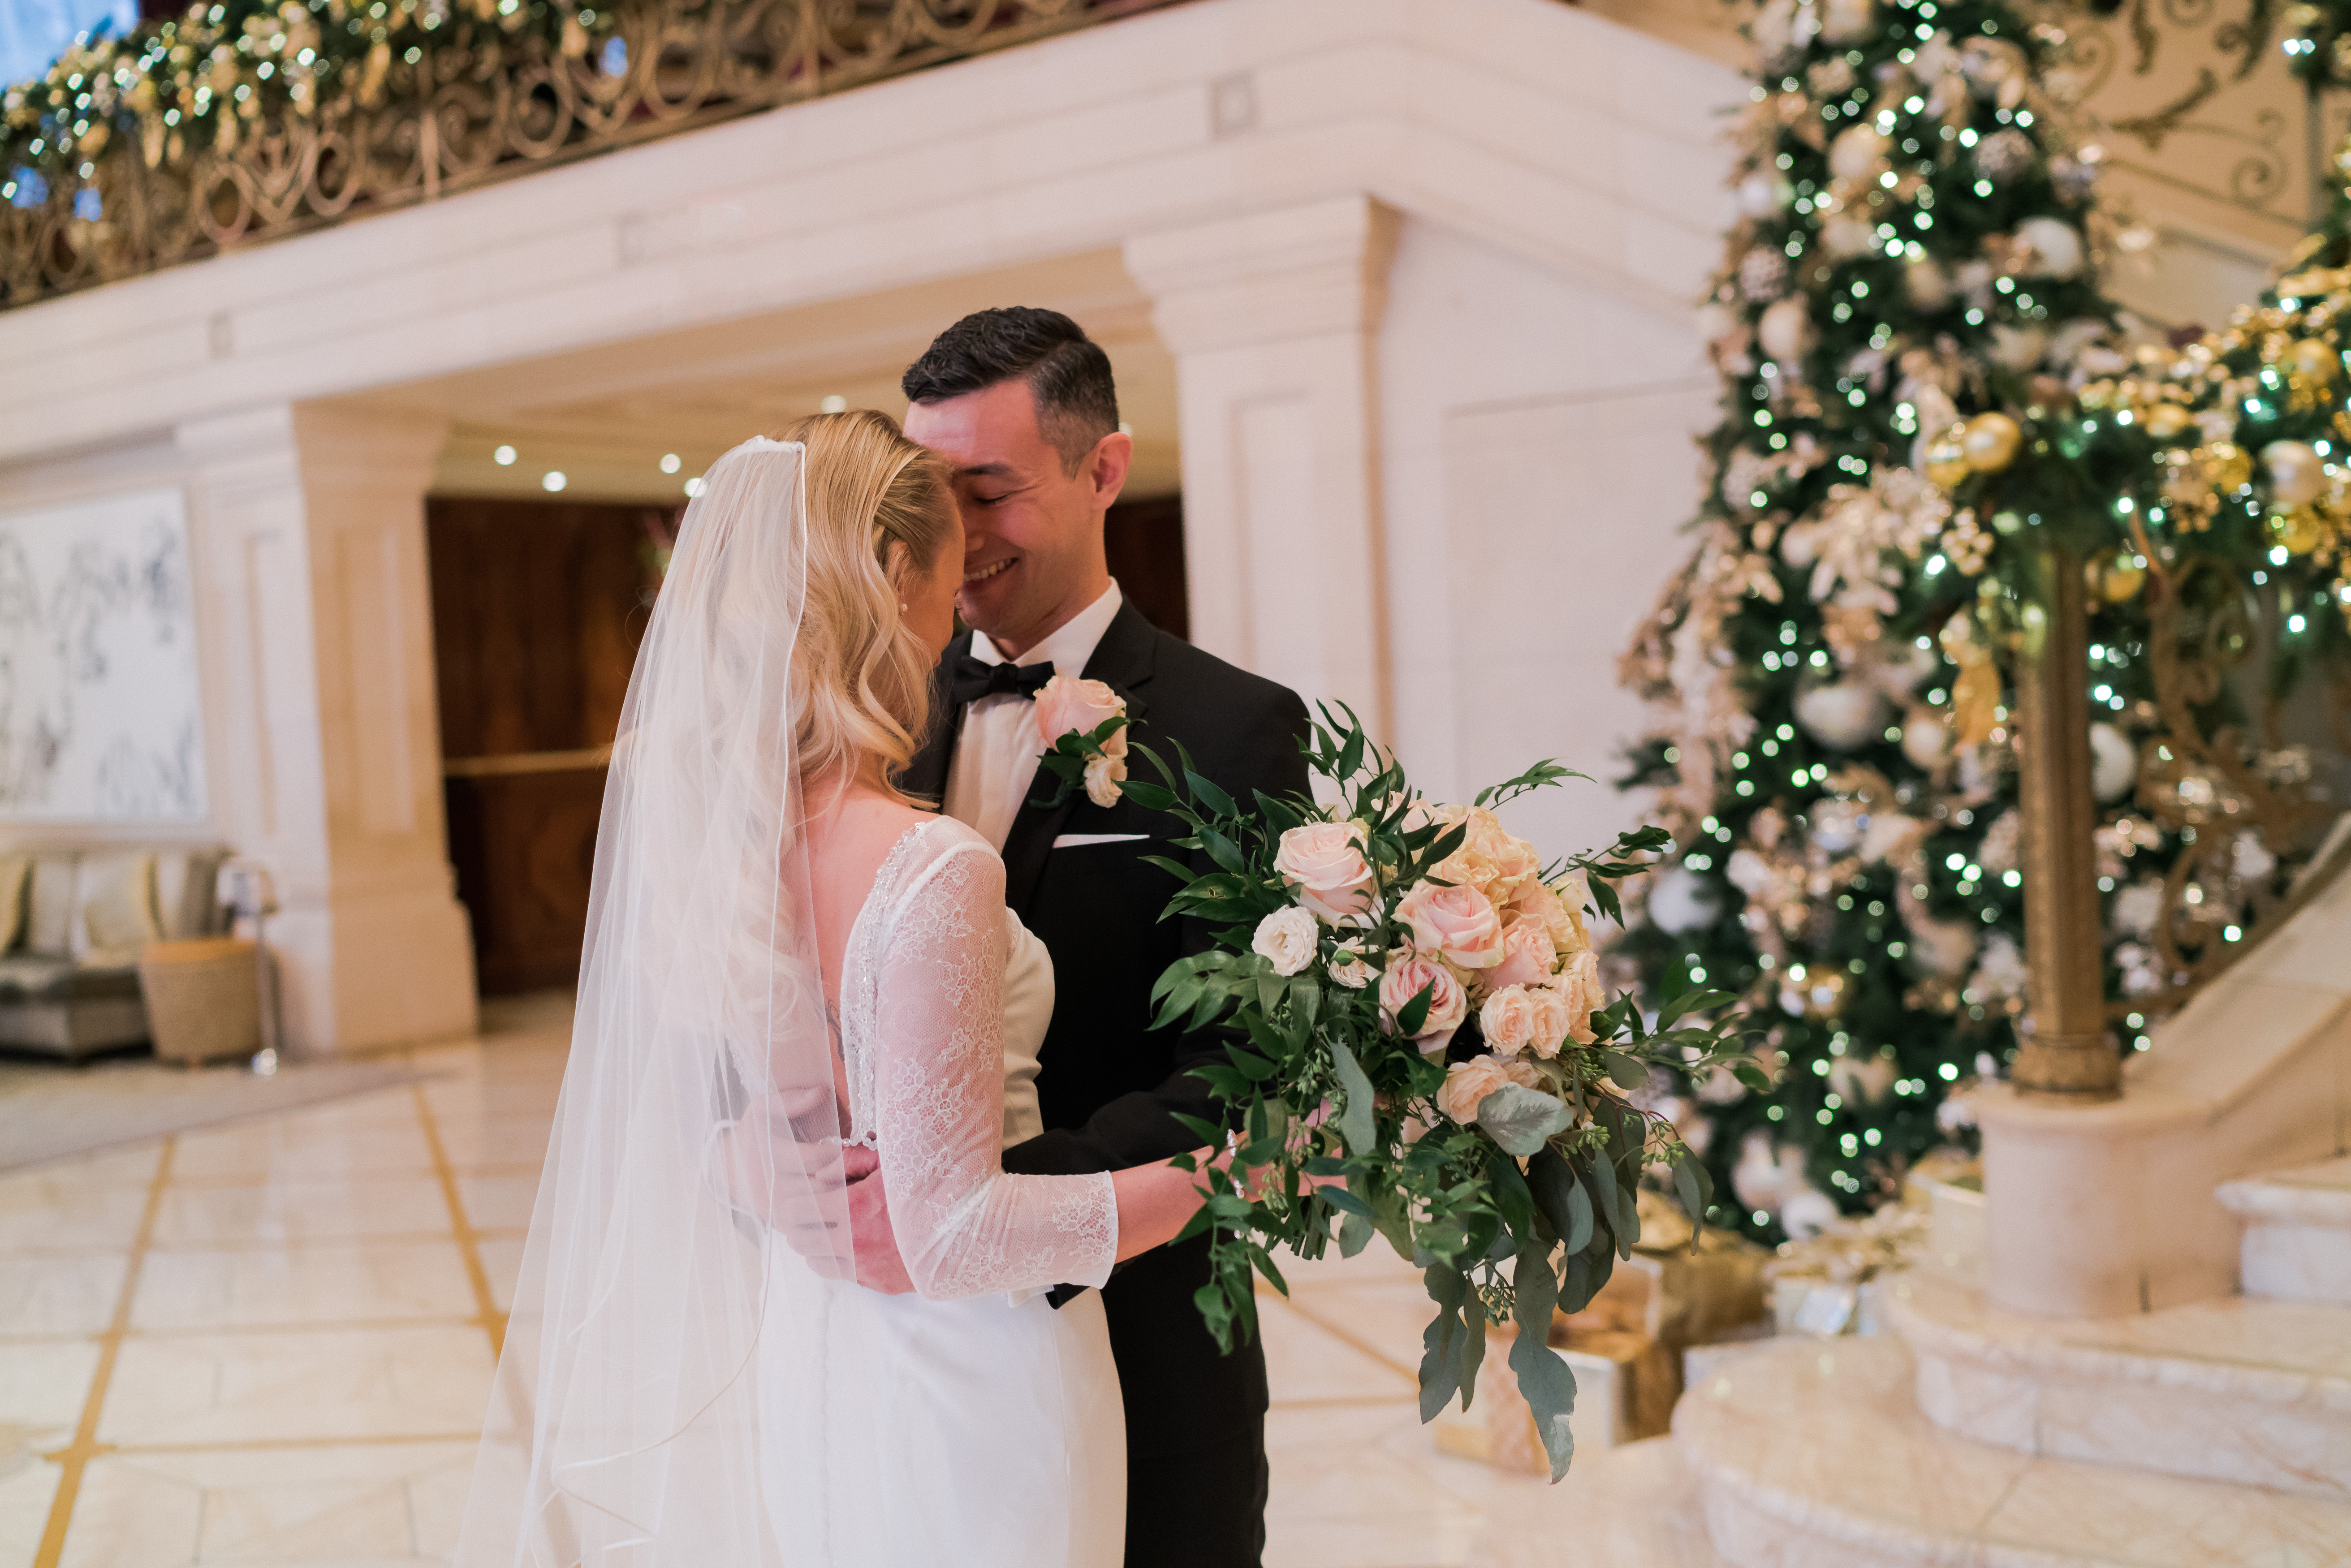 Why you should have your wedding at Plaza Hotel